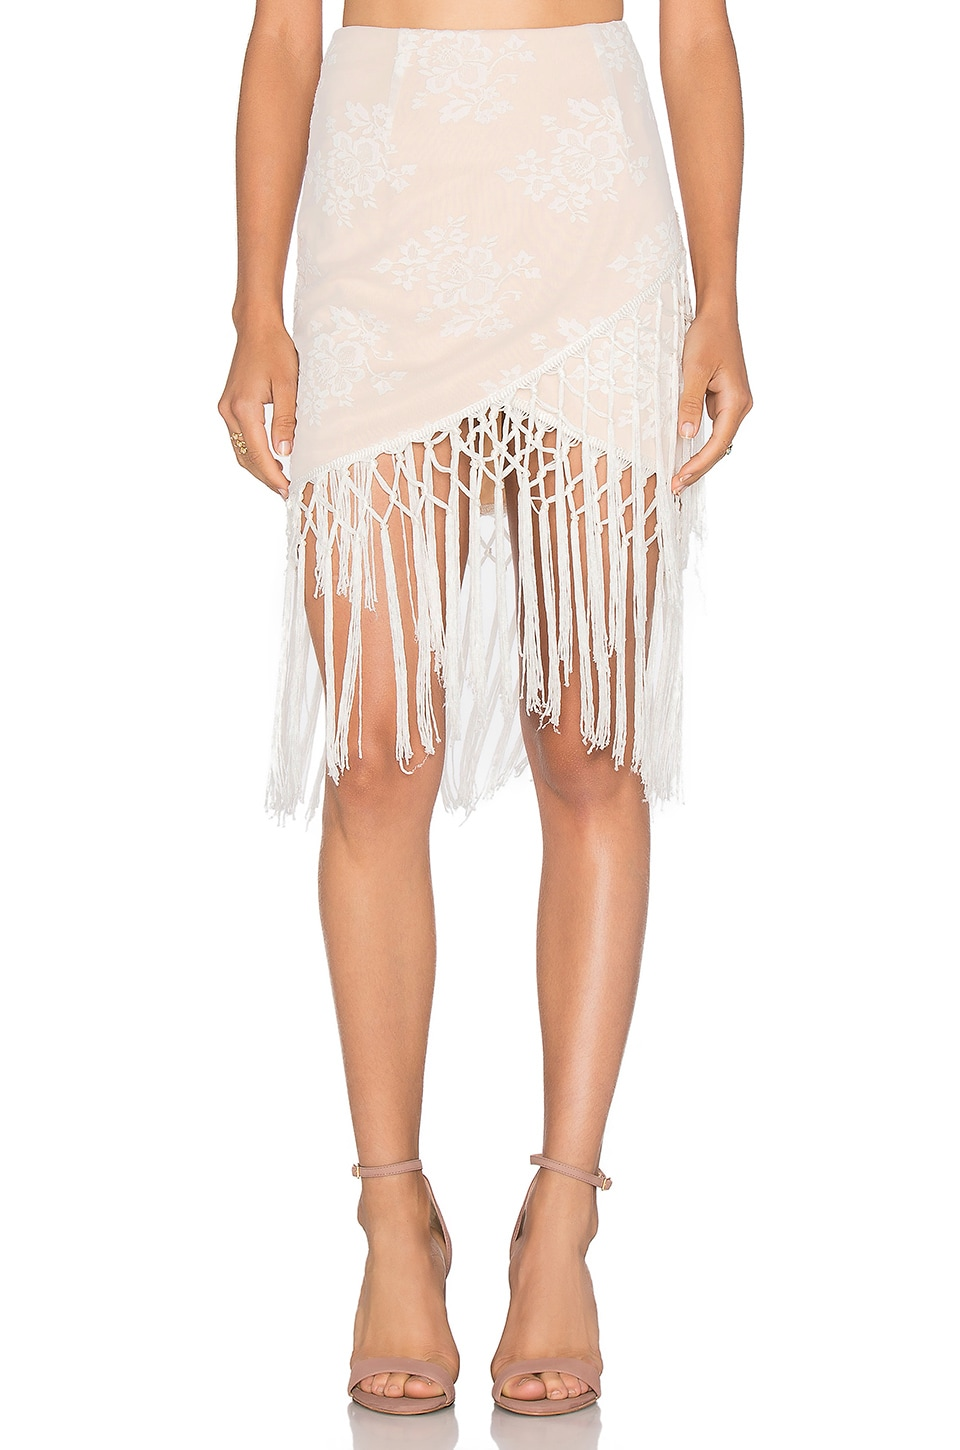 Filaree Fringe Skirt